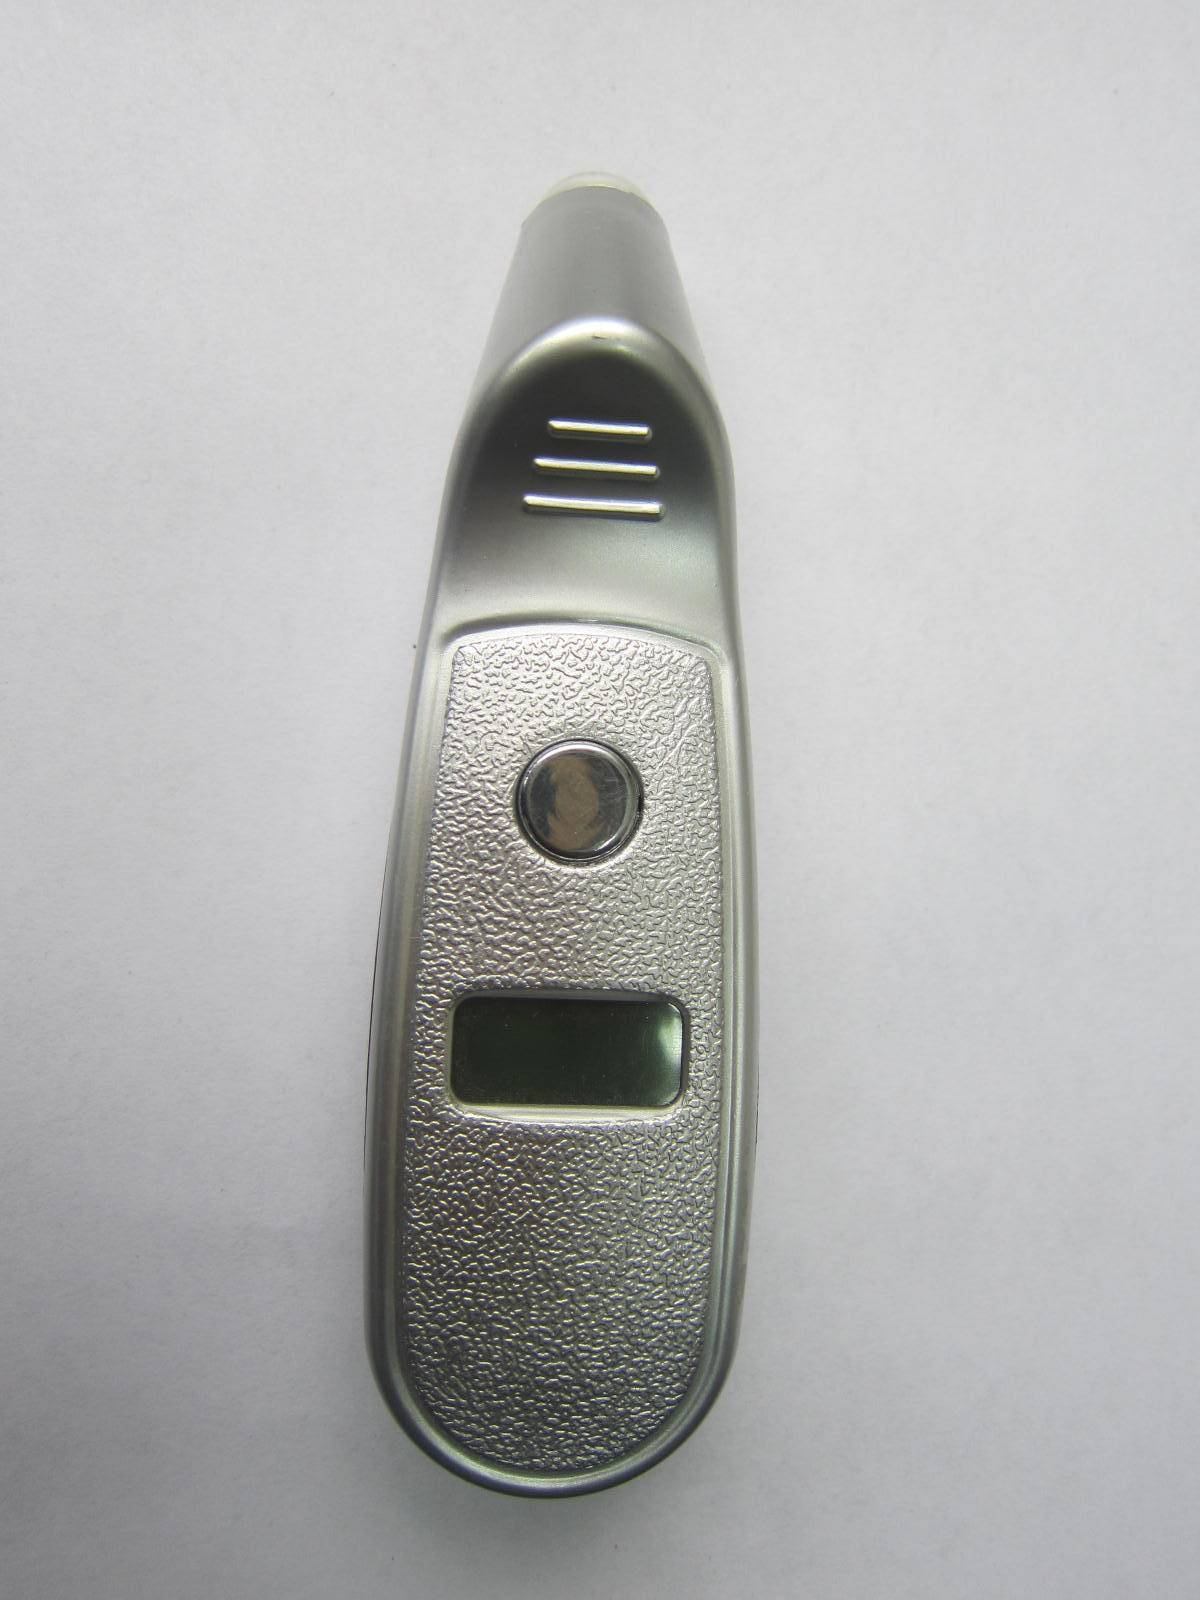 DIGITAL TIRE PRESSURE GAUGEGL-0802